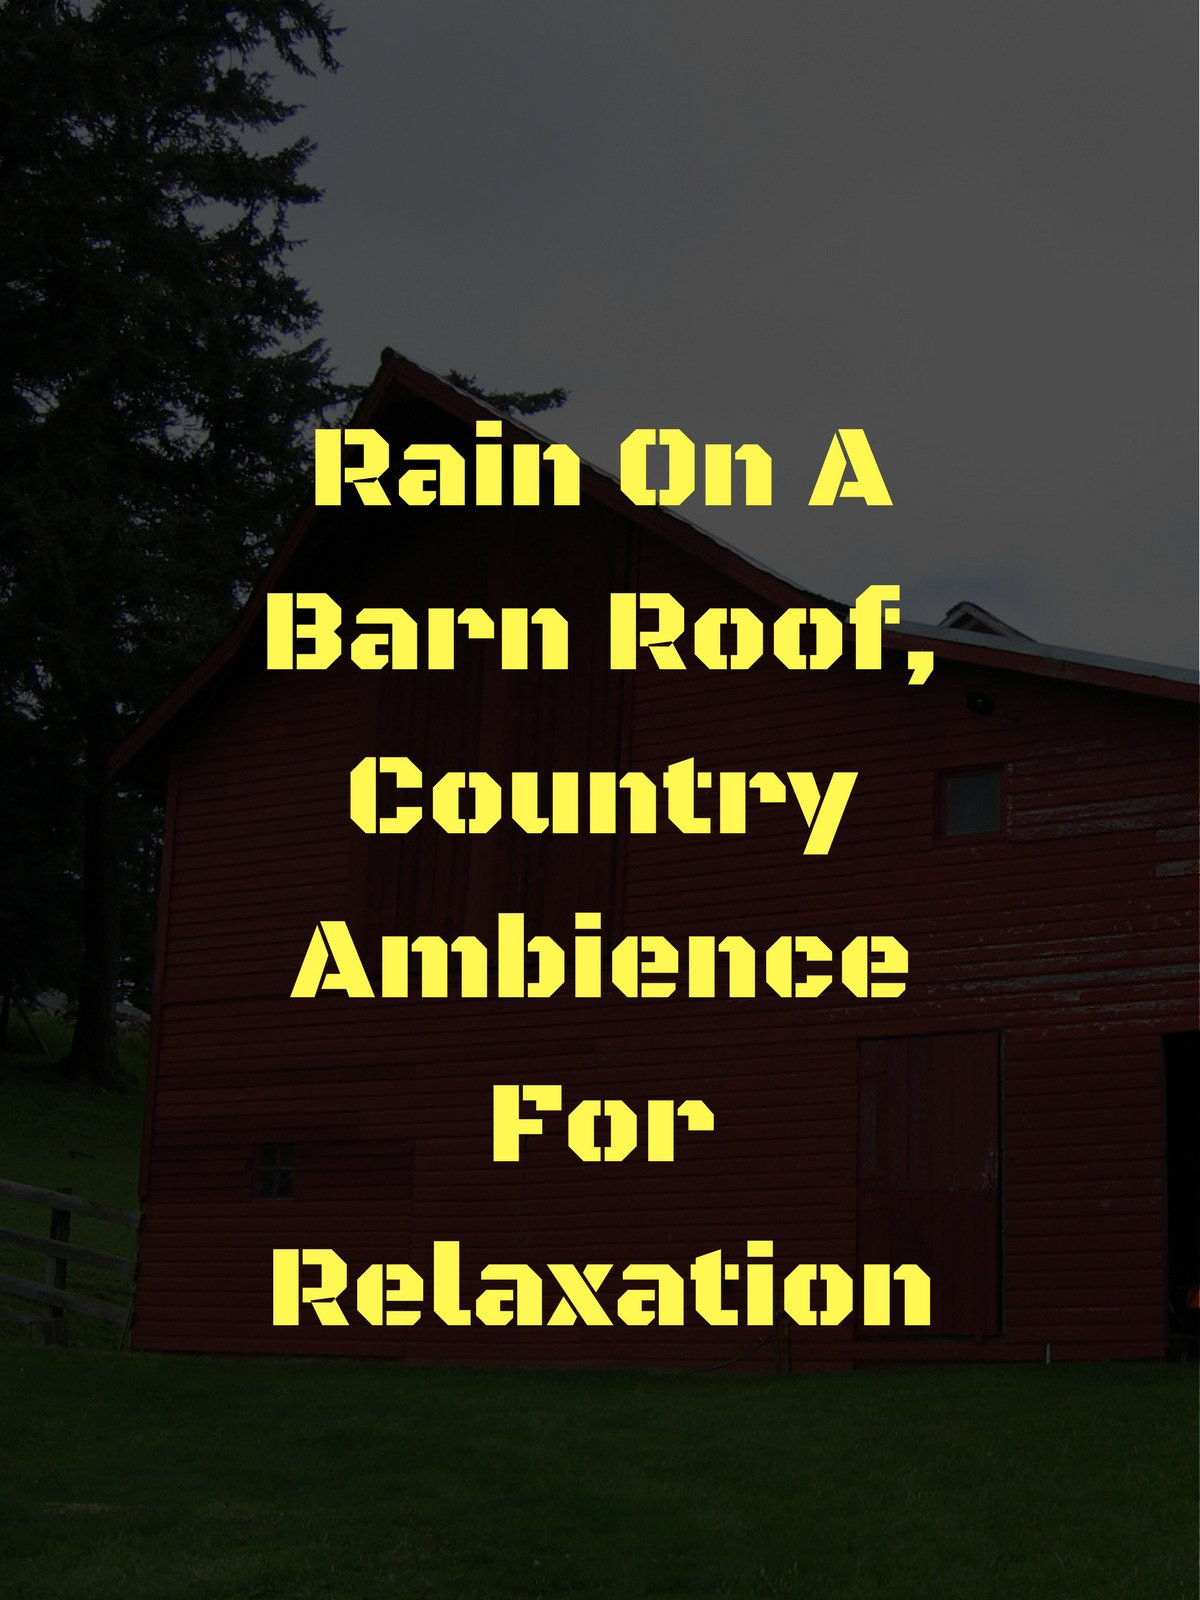 Rain On A Barn Roof, Country Ambience for Relaxation